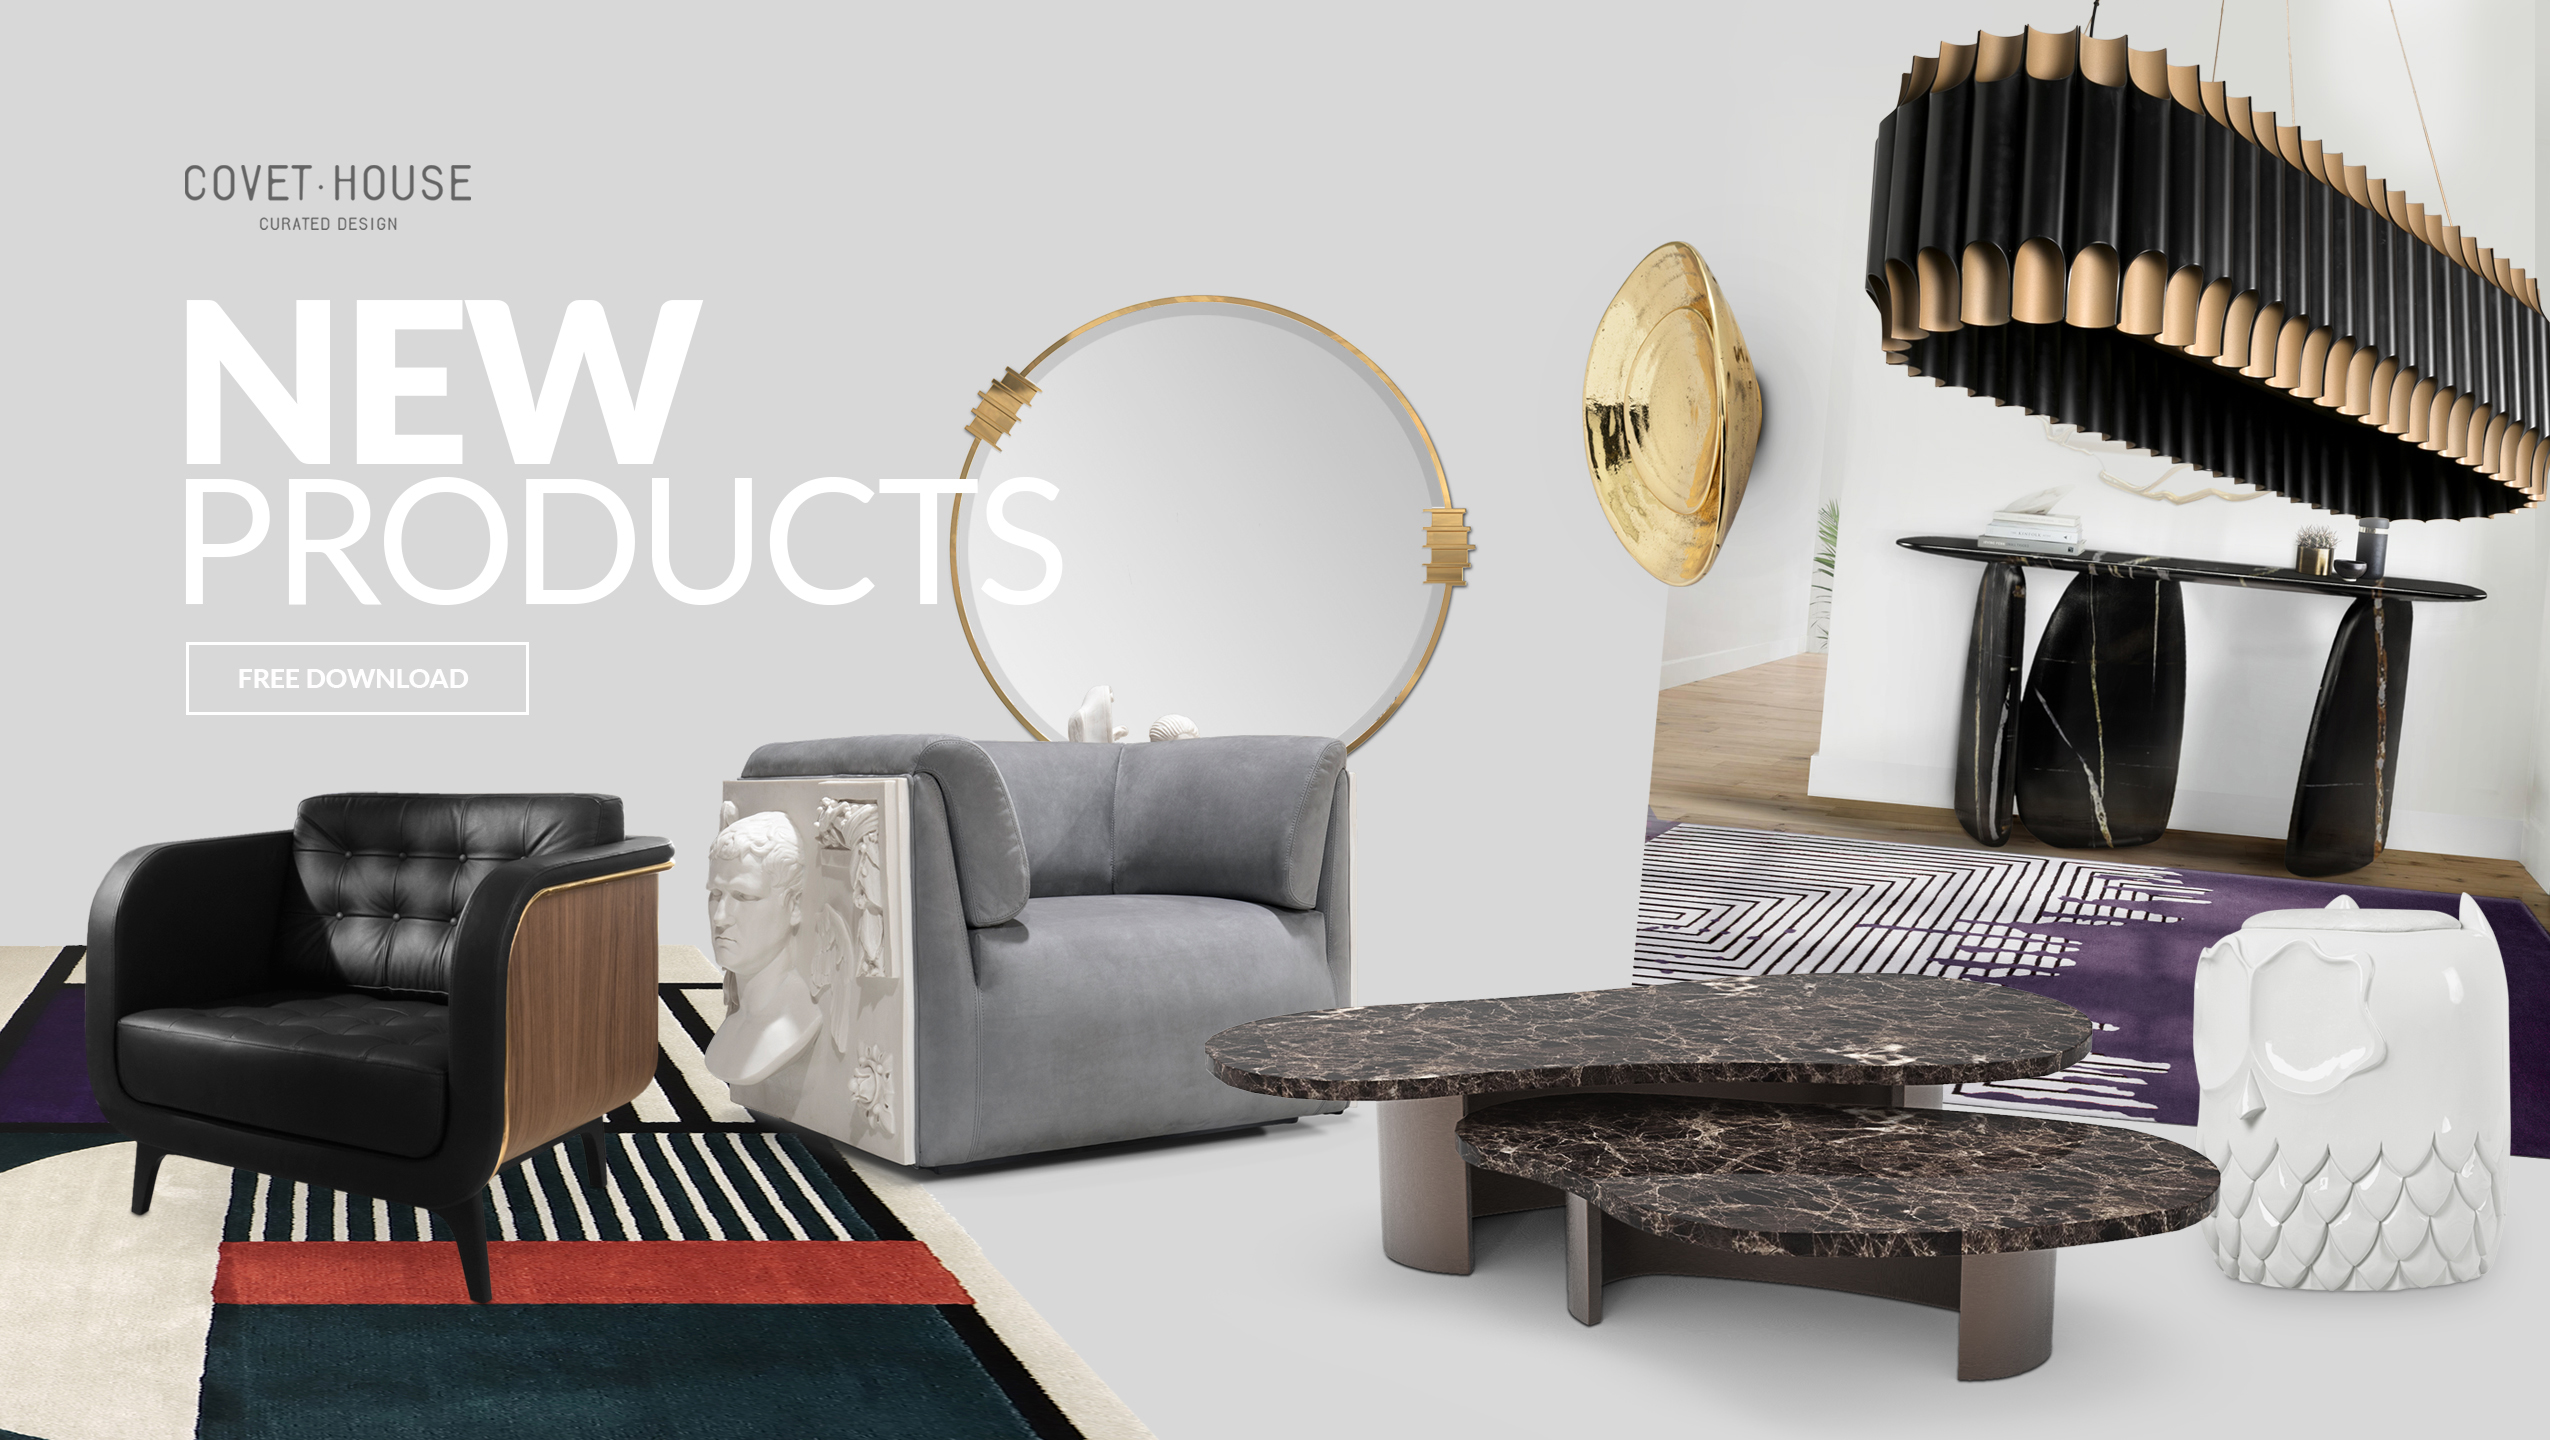 New Products 2020 maison et objet 2020 Maison Et Objet 2020: Highlights Of The Event newproducts cta1